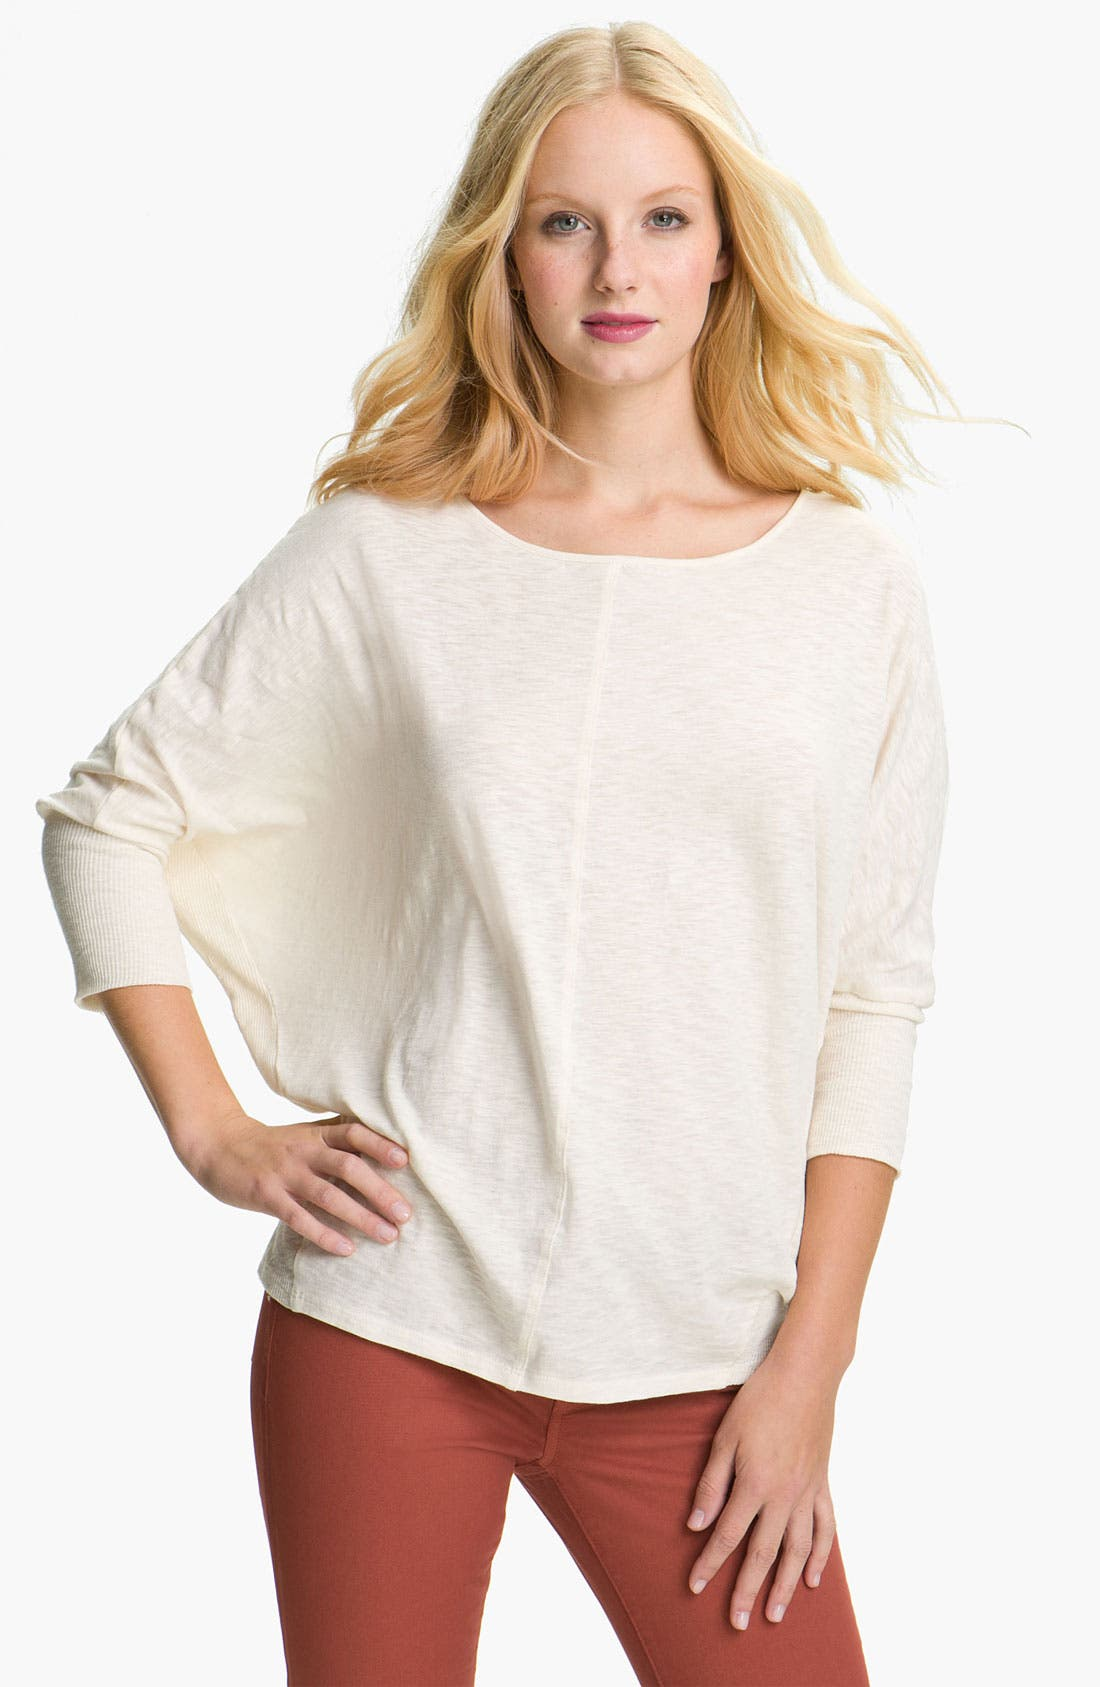 Alternate Image 1 Selected - Two by Vince Camuto Dolman Sleeve Top (Petite)